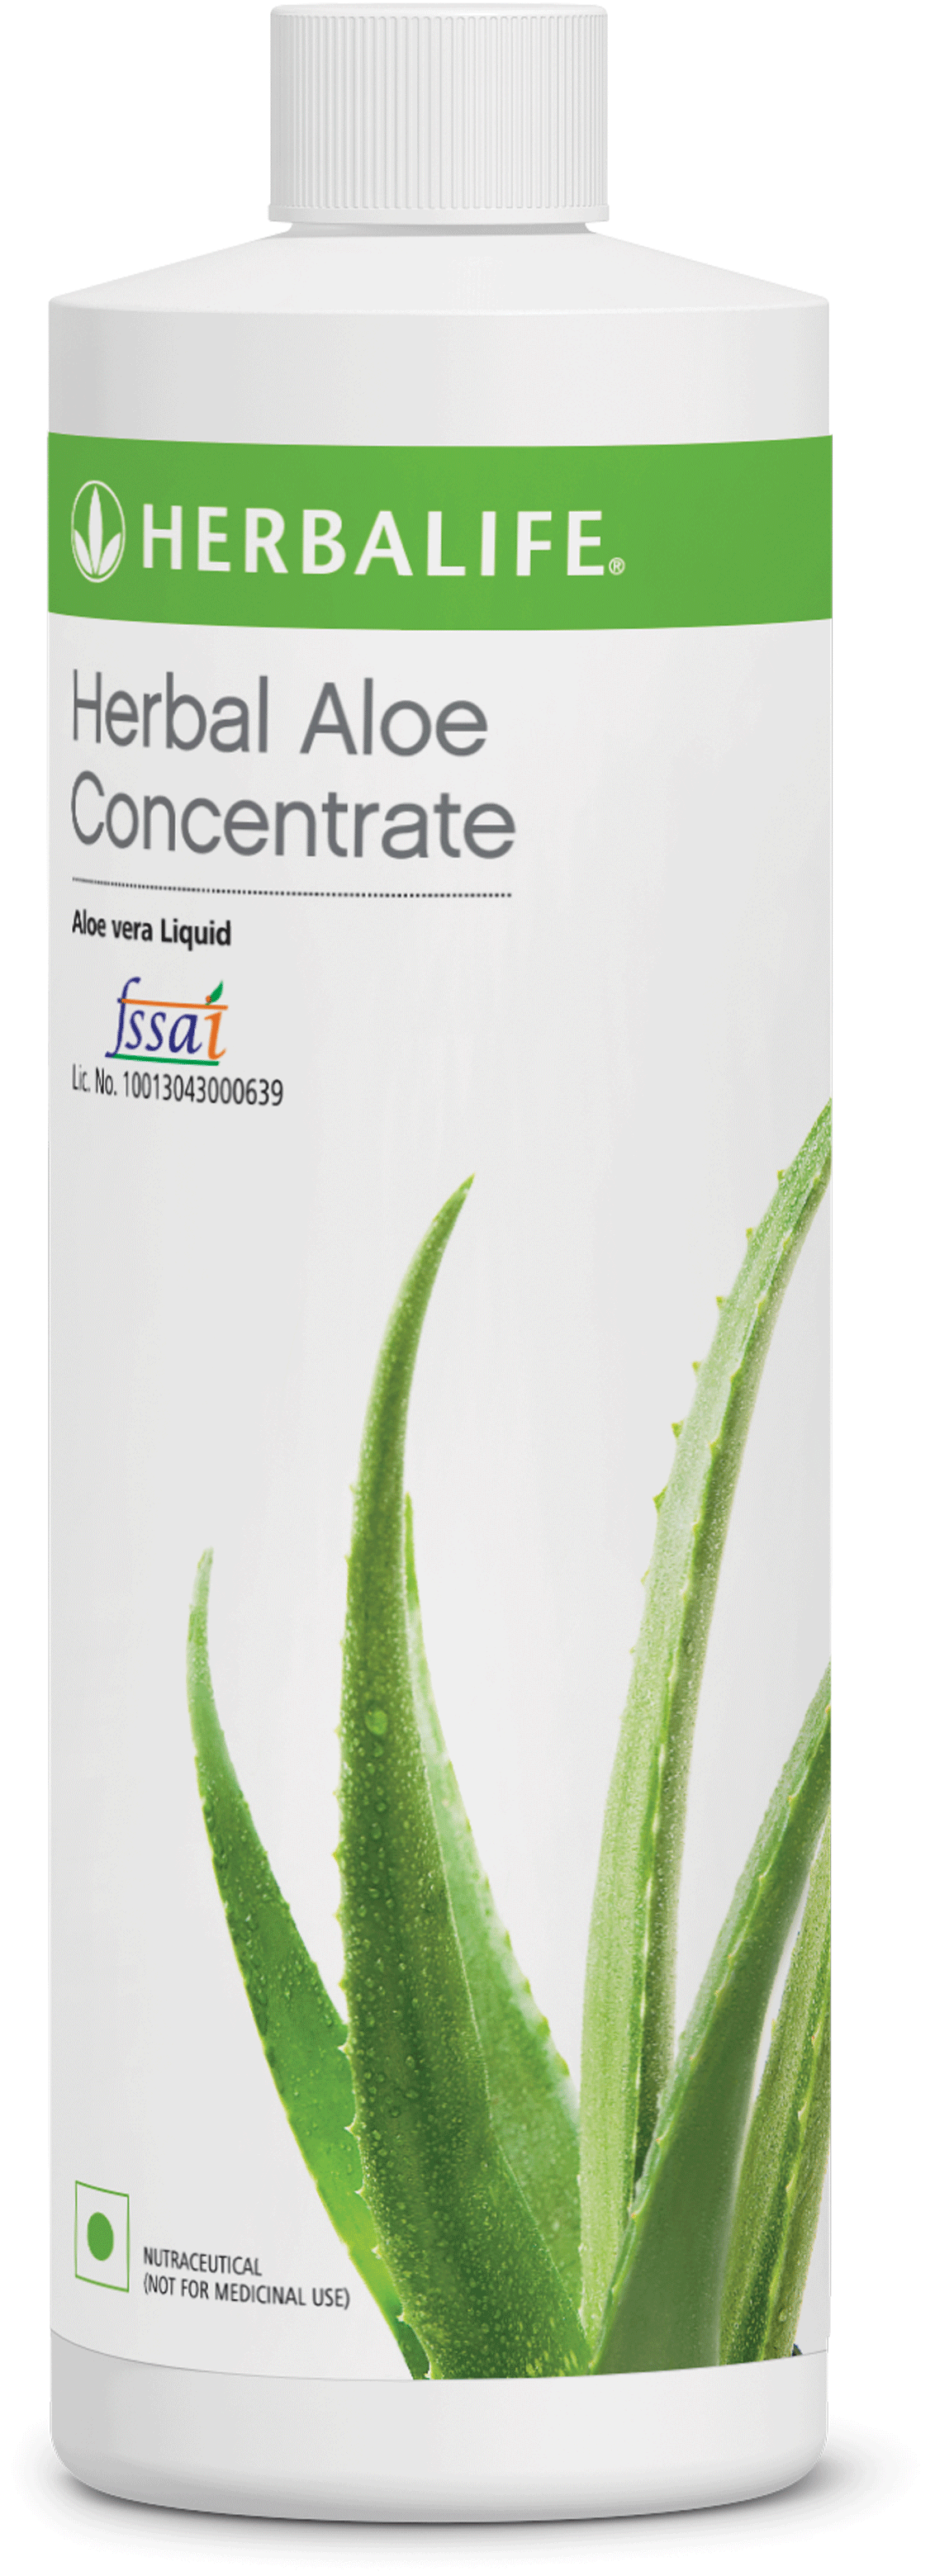 Download Herbalife India Launches Herbal Aloe Concentrate To Aloe Herbalife Png Png Image With No Background Pngkey Com